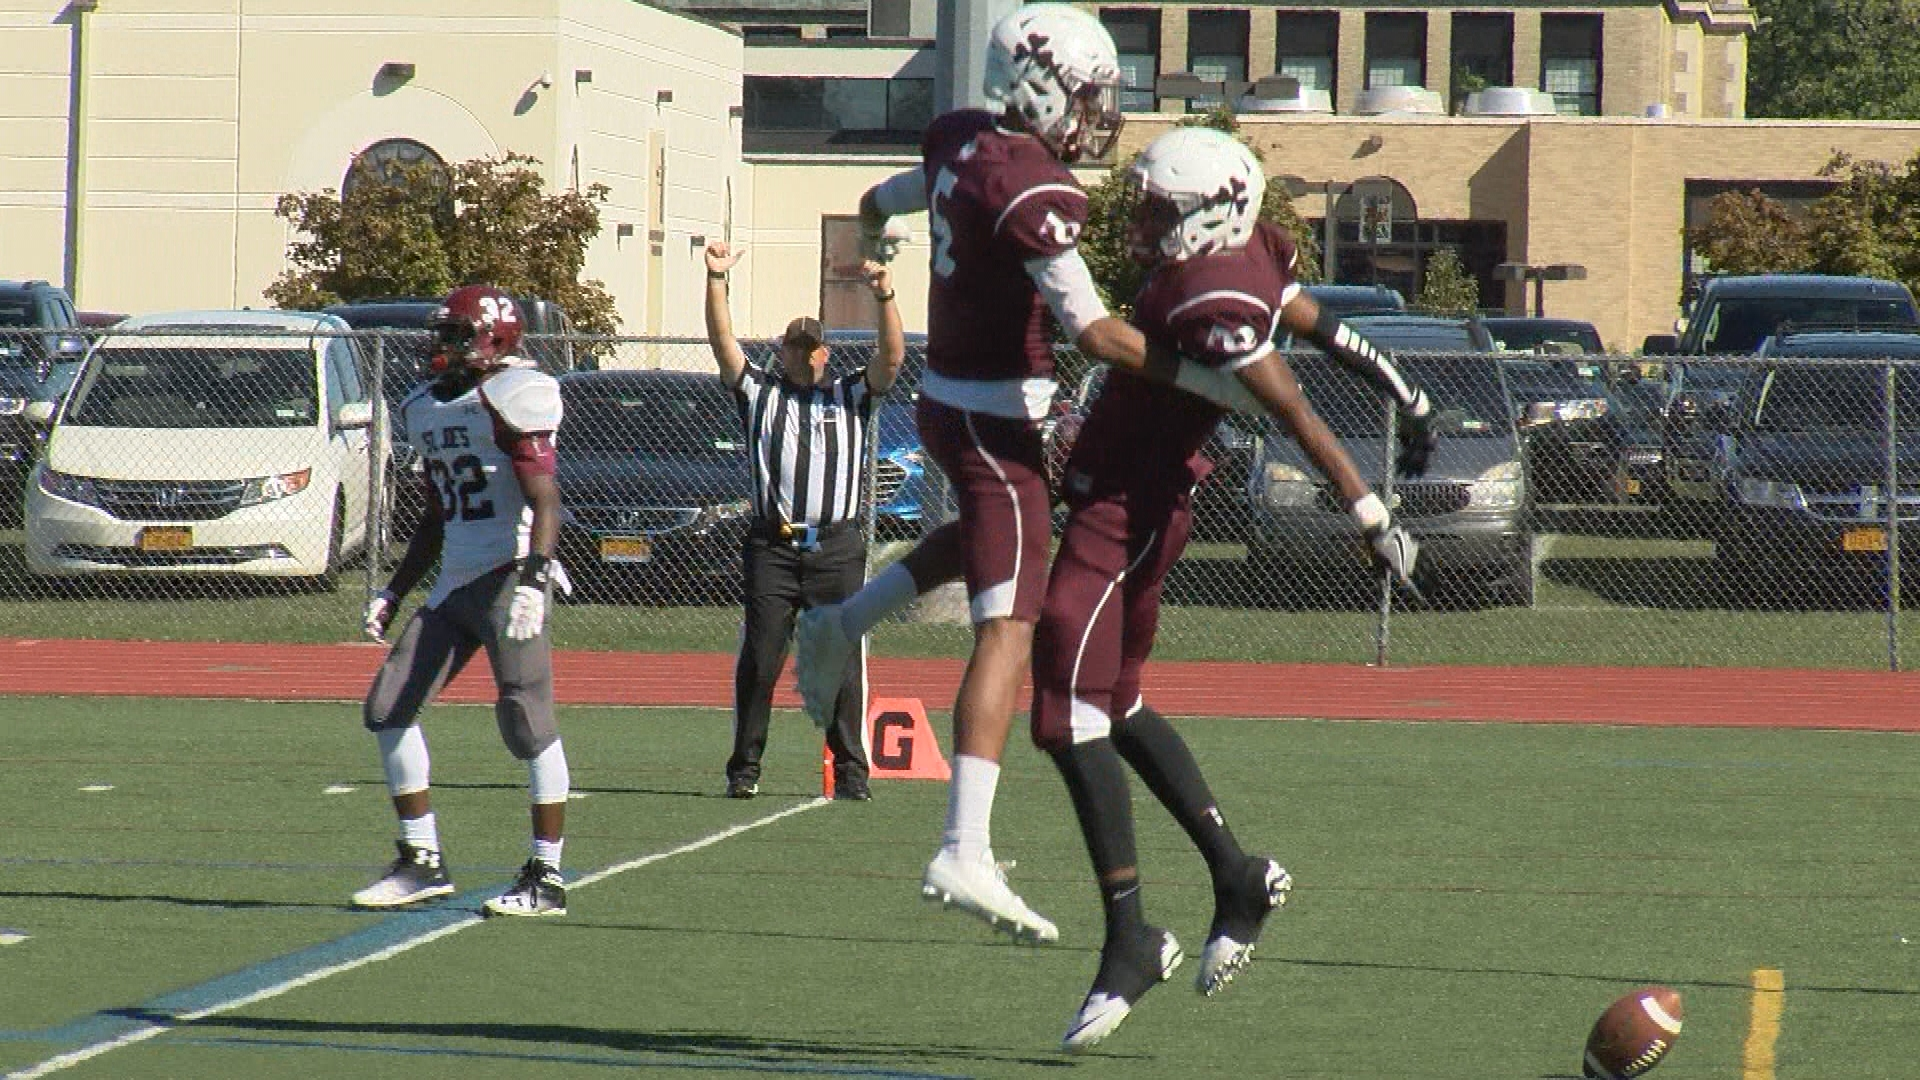 9-24 ST JOES AT AQUINAS_1474775252918.jpg